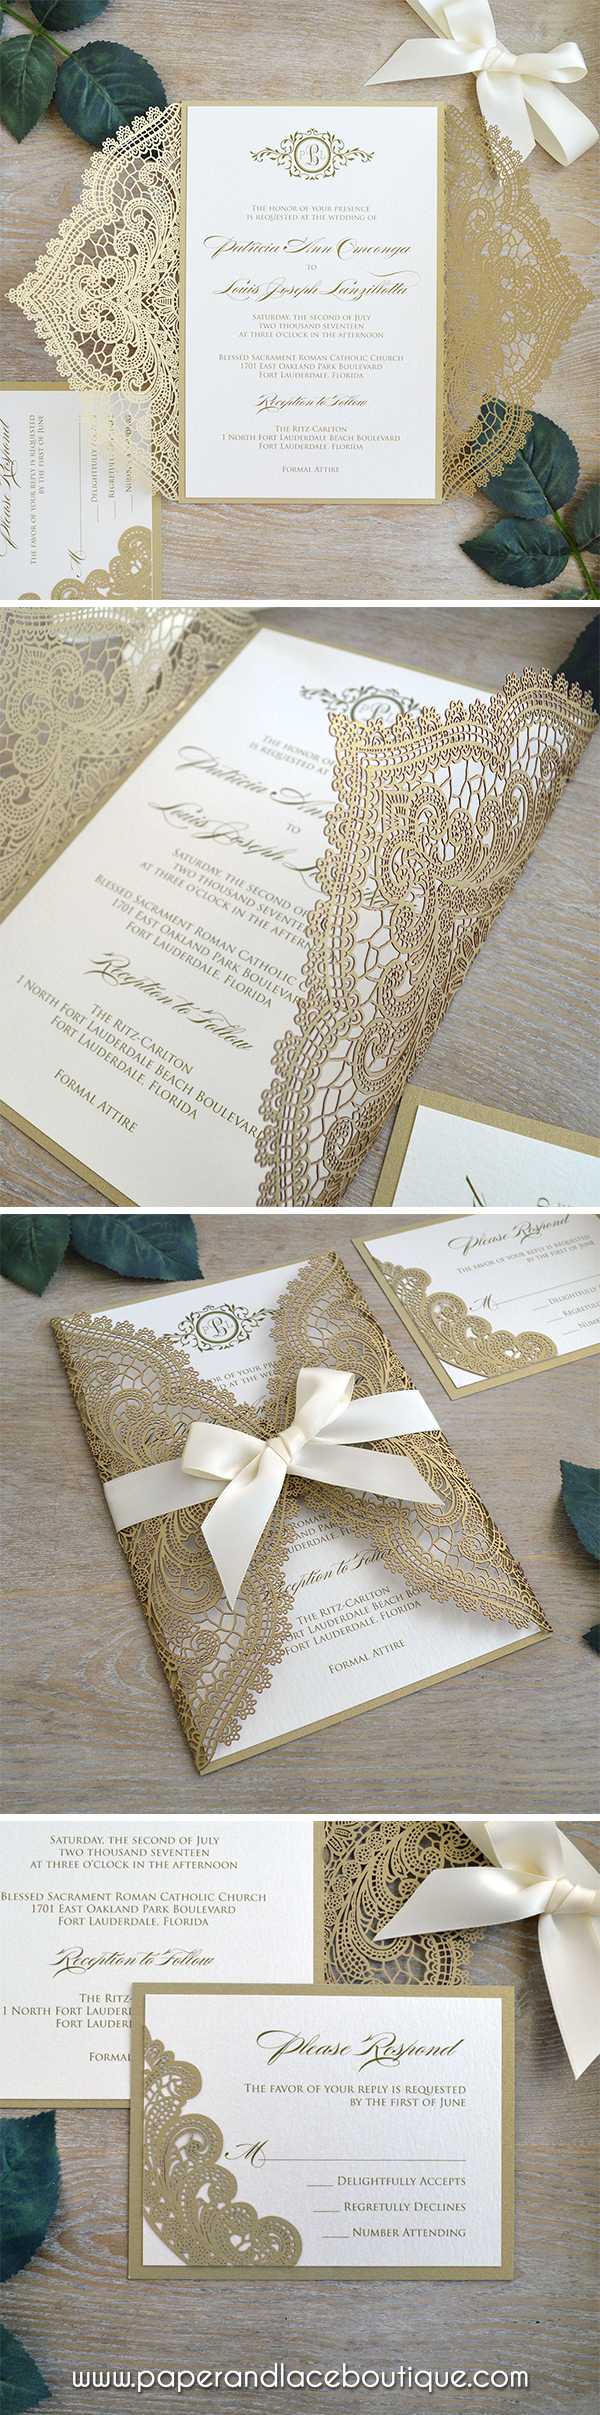 Chantilly Lace Laser Cut Wrap Invitation Gold Laser Cut Wedding